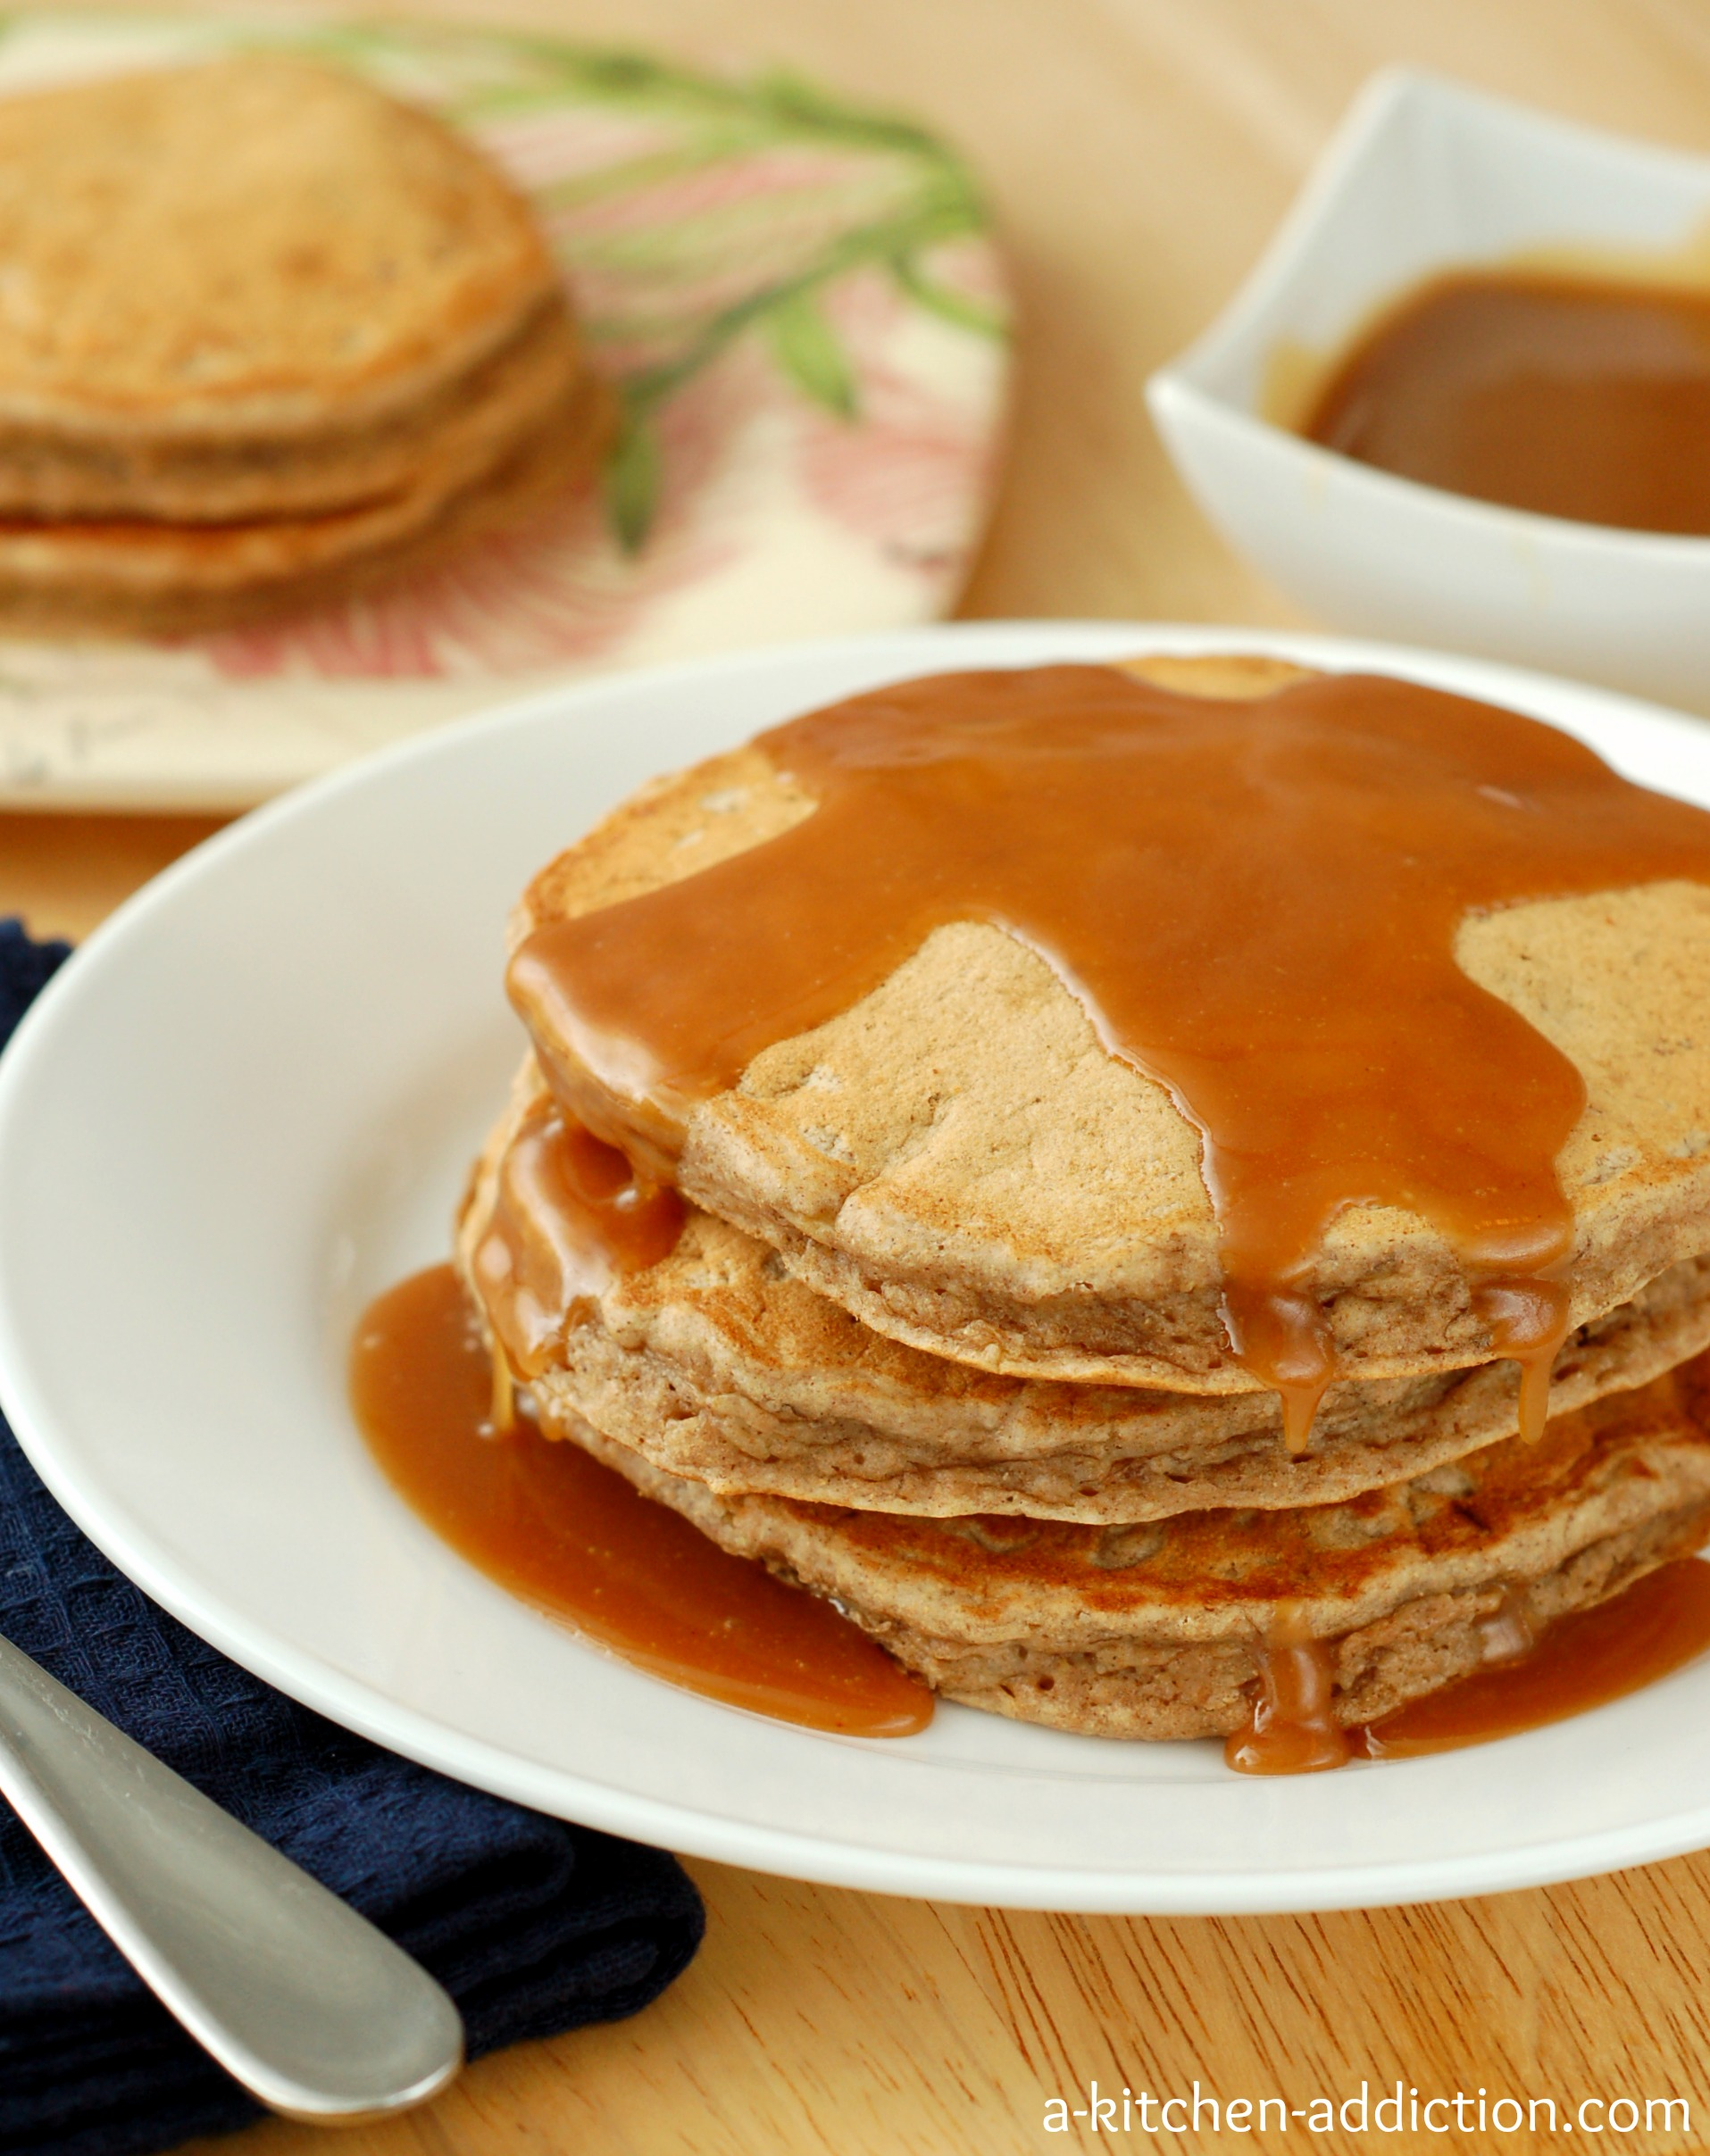 Pancakes with Peanut Butter and Syrup